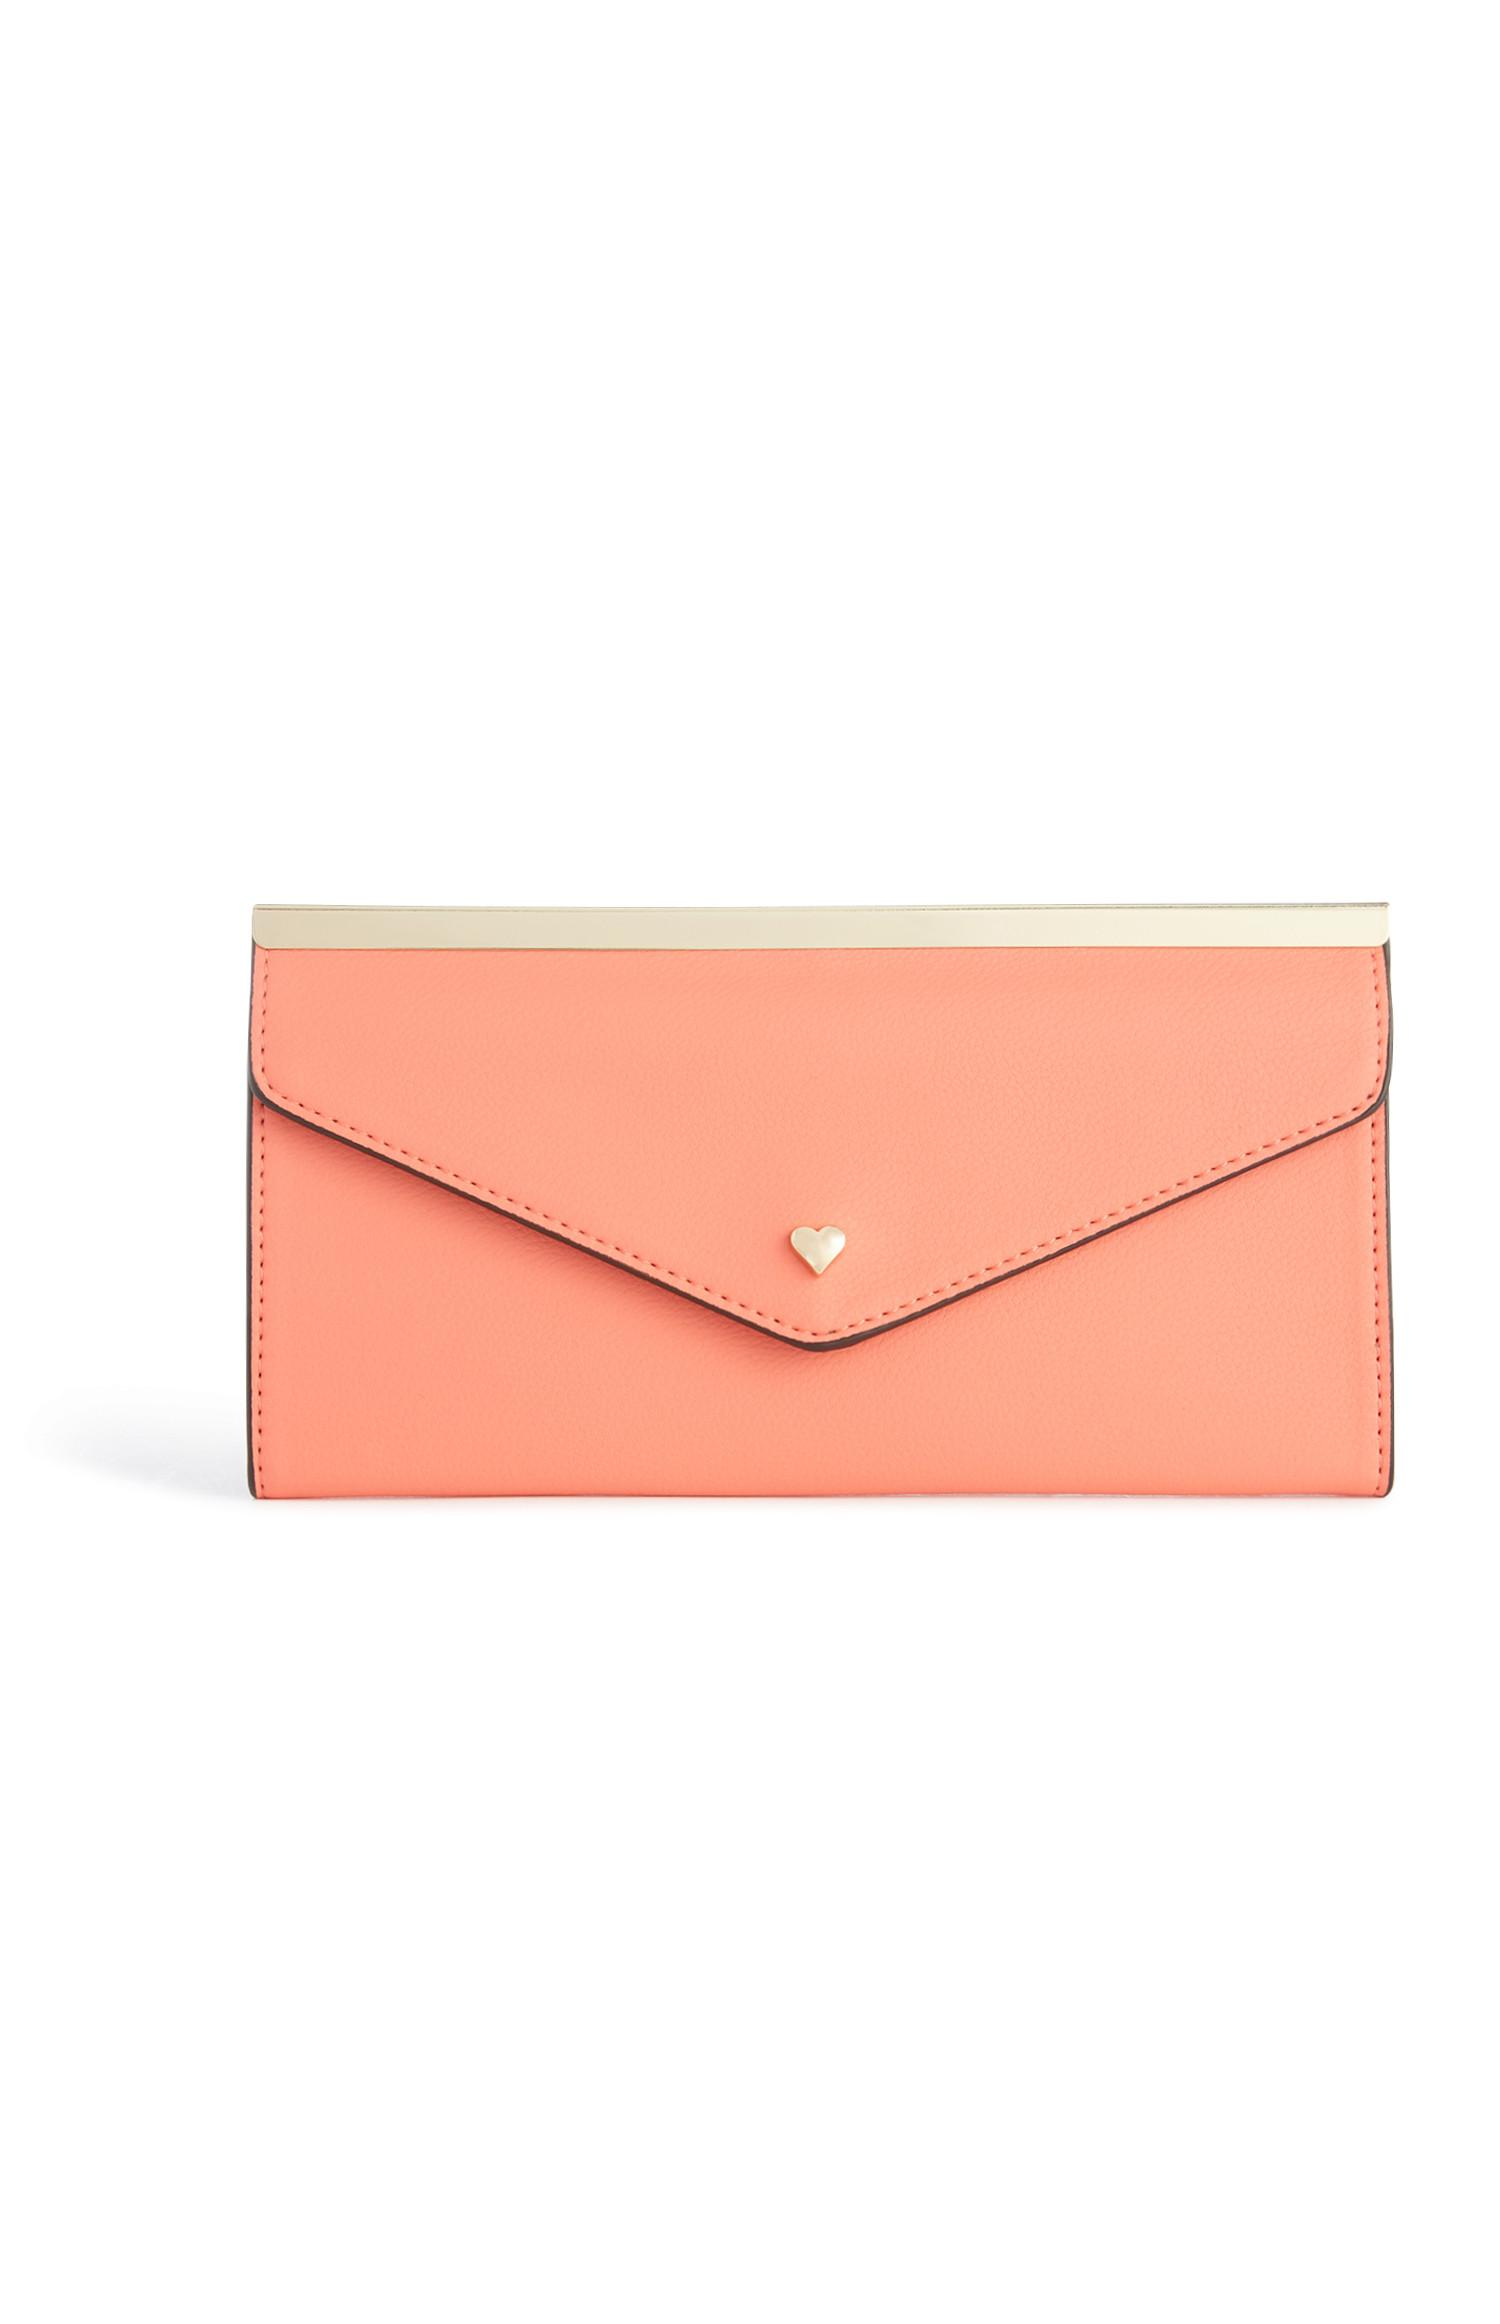 Coral Heart Clutch